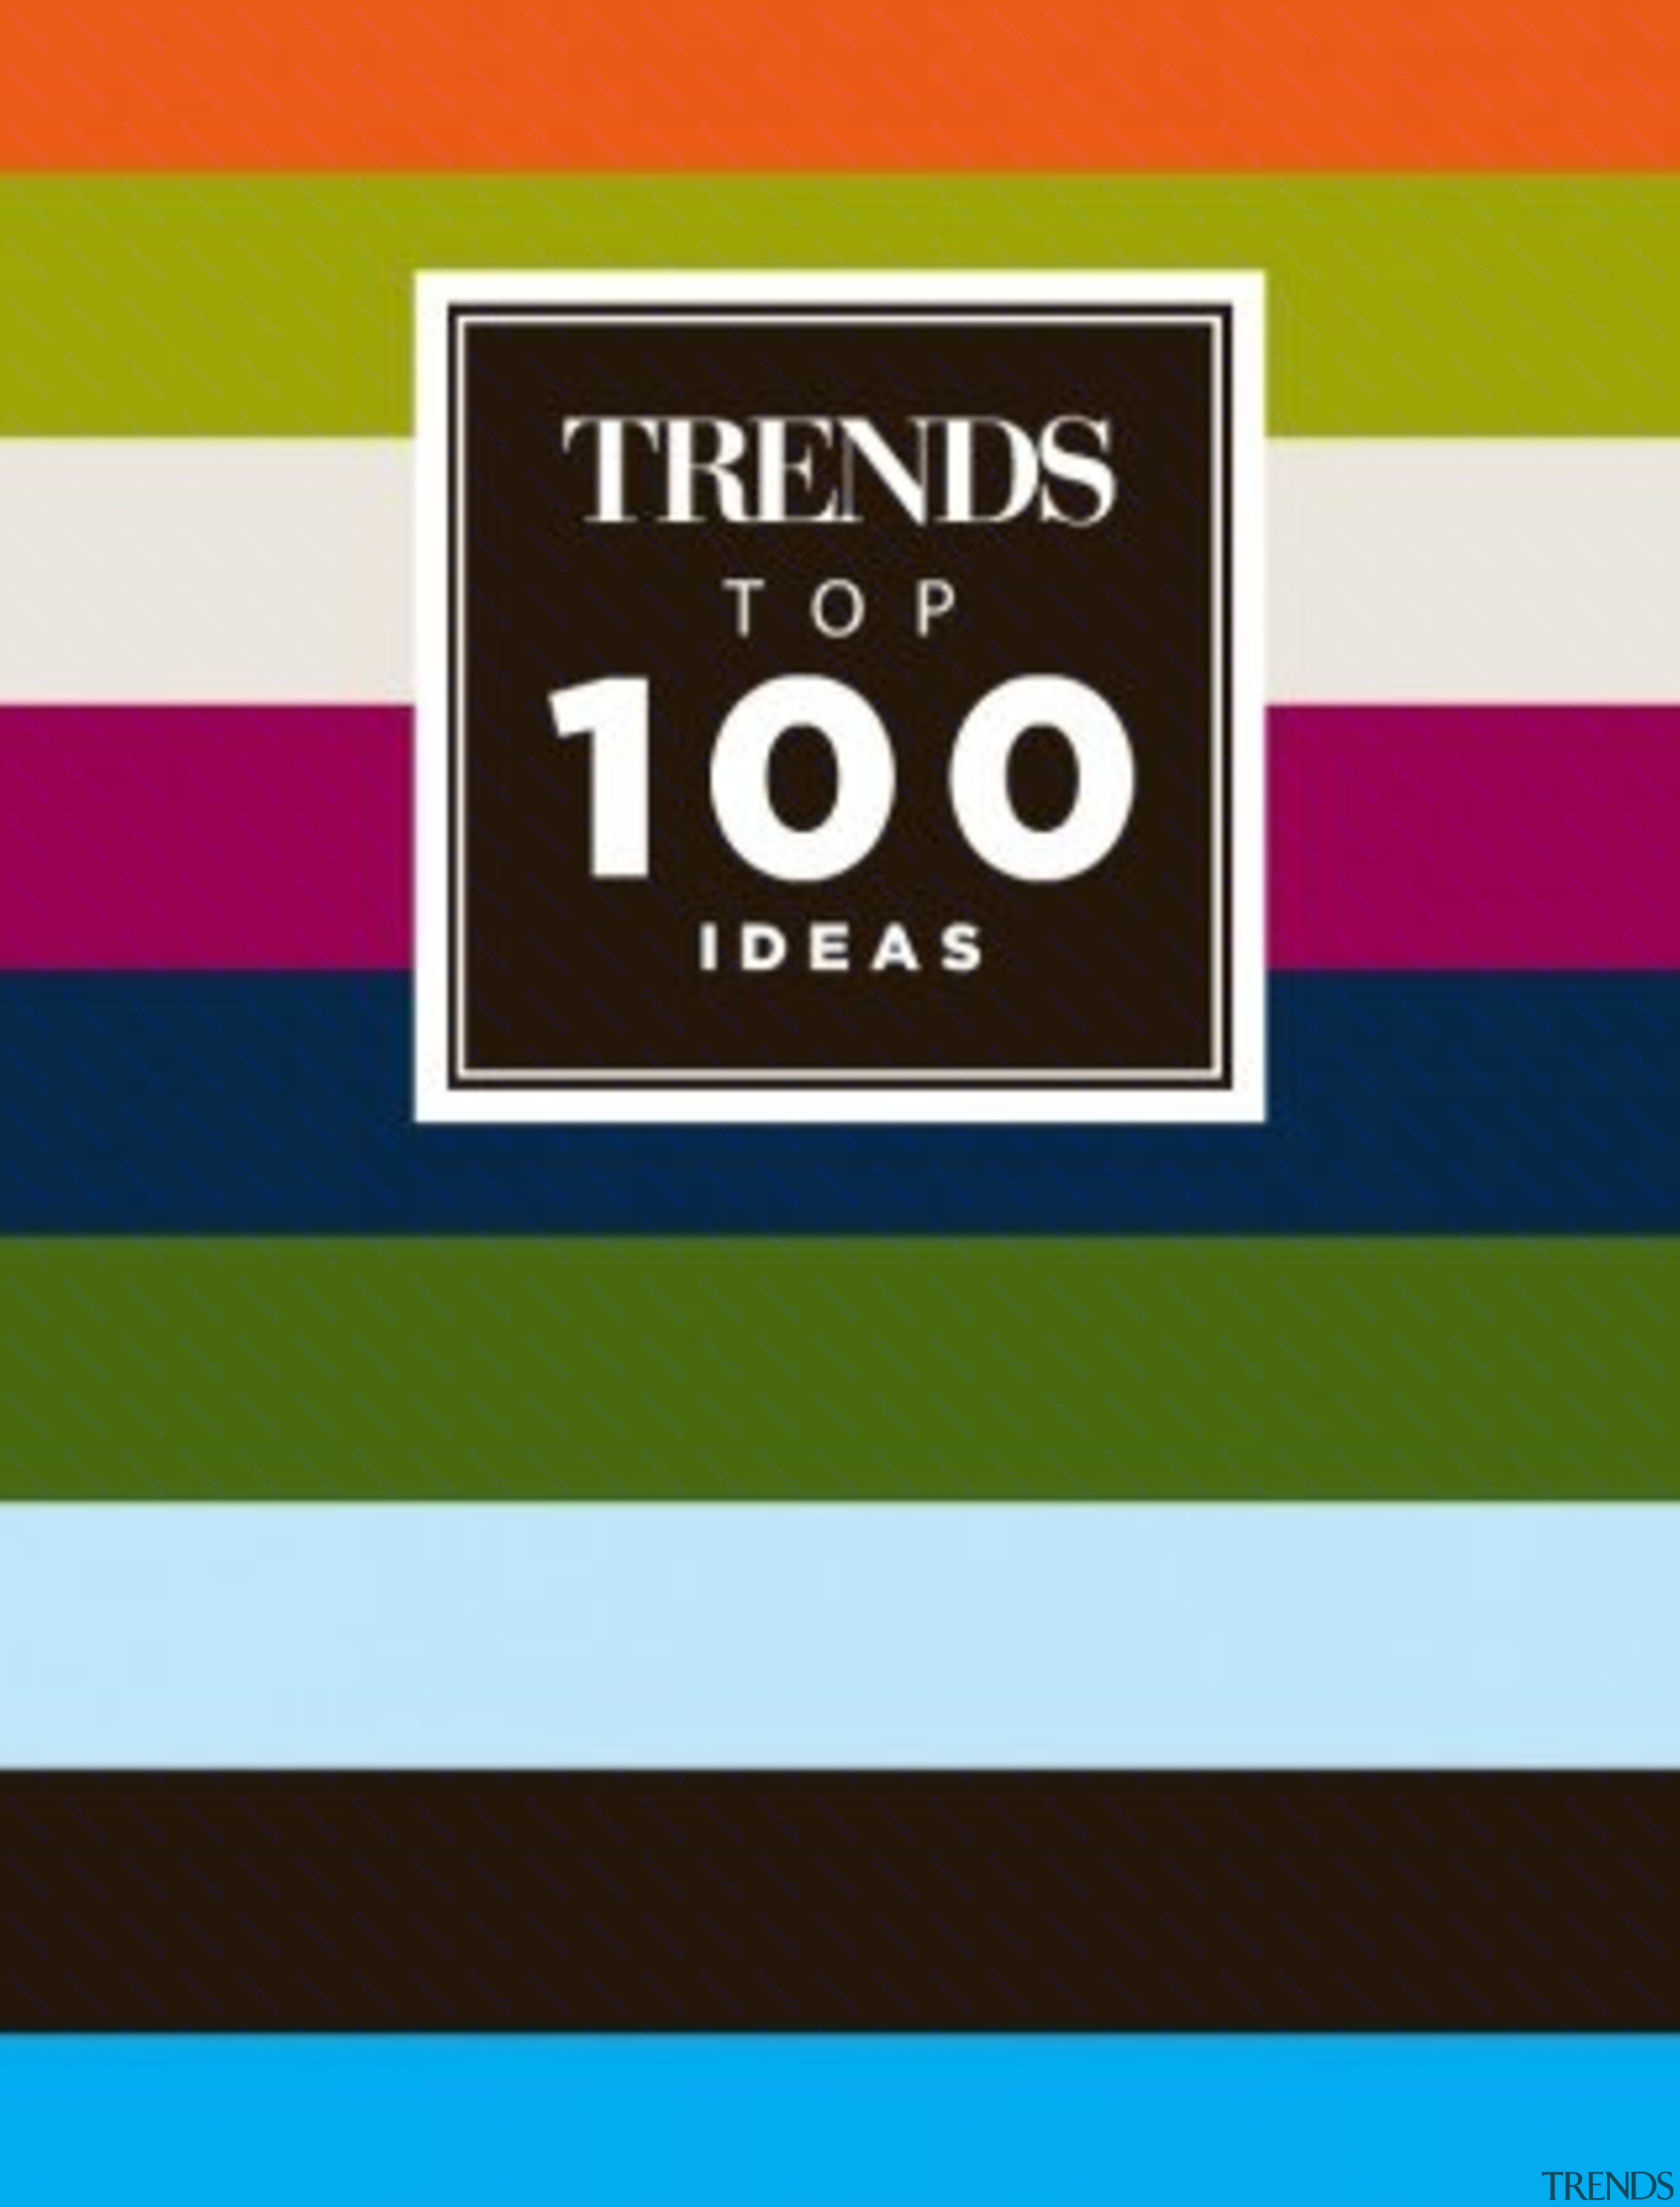 Nz Top 100 area, brand, font, graphic design, line, logo, product, text